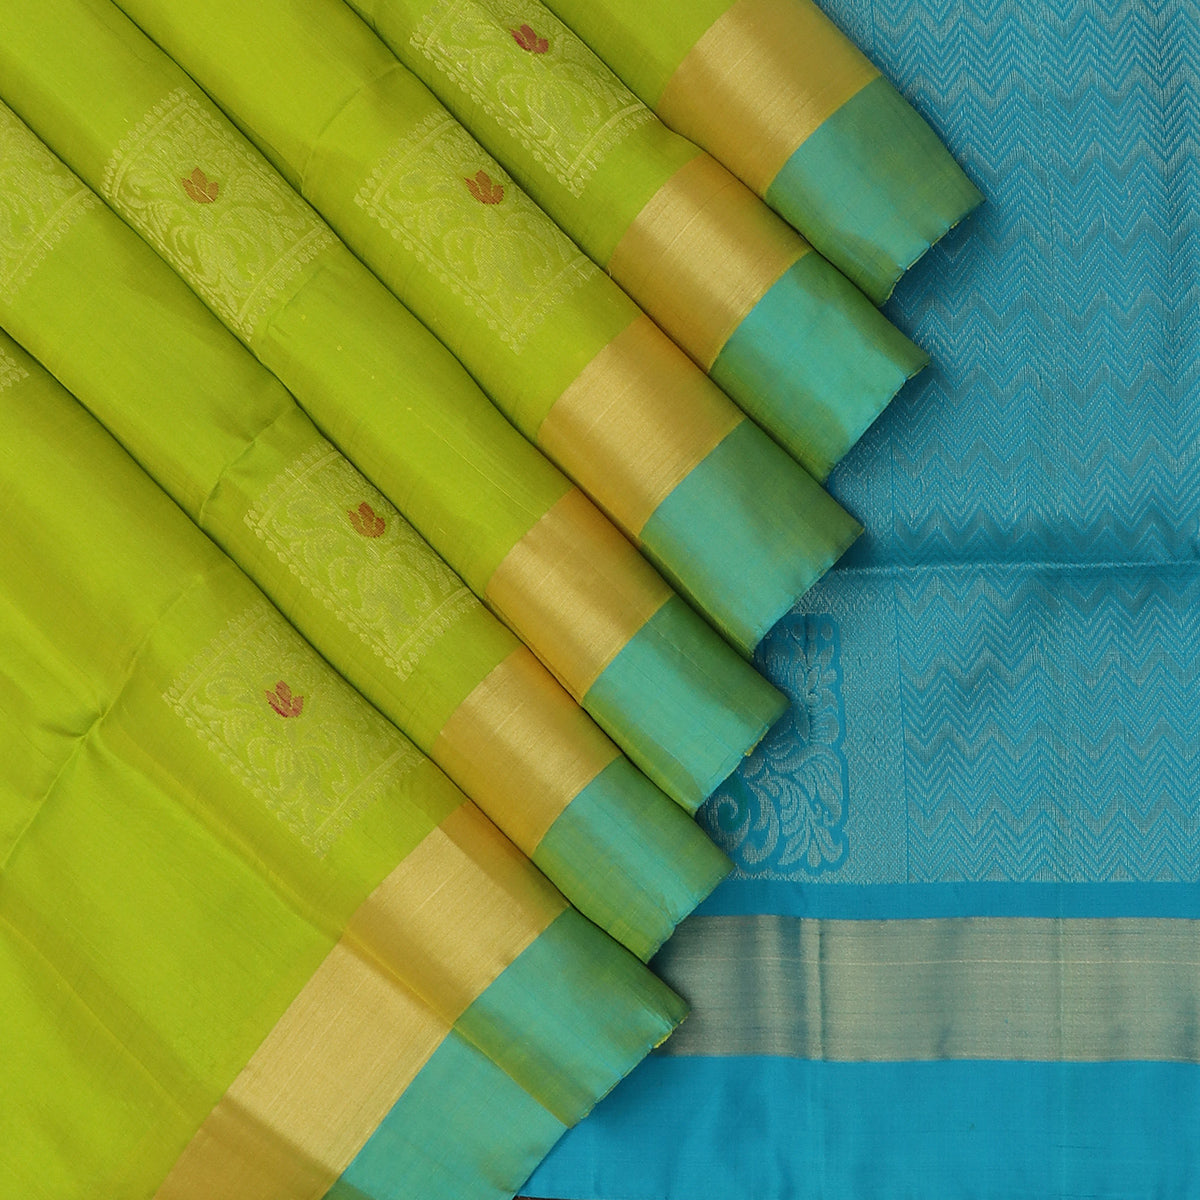 Soft Silk Saree Pear Green with Zari Buttas and Sky Blue with zari border